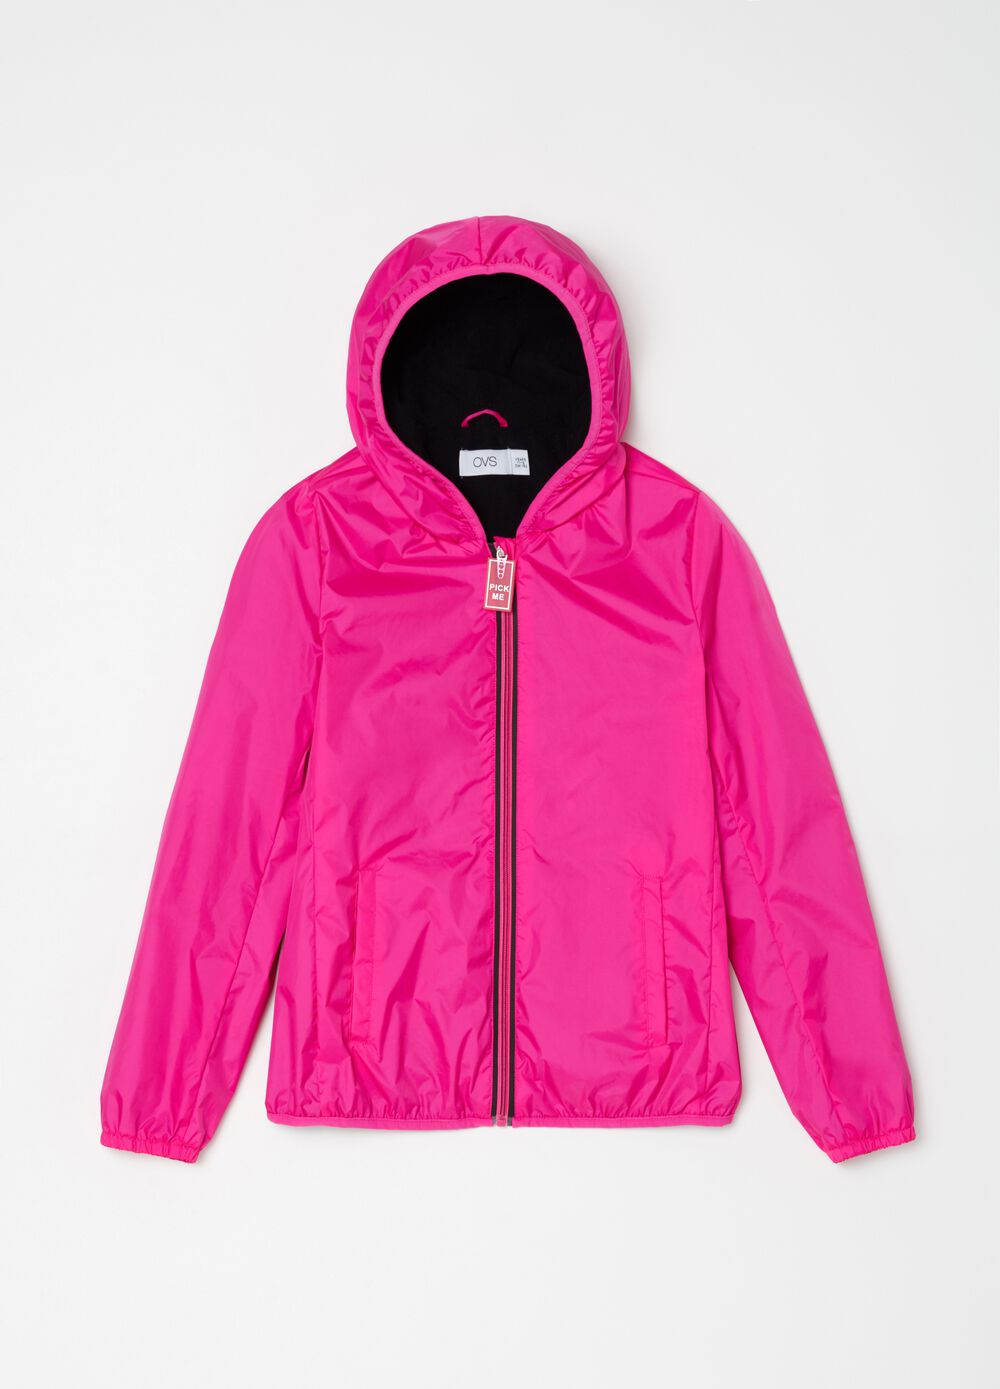 Nylon windbreaker with hood